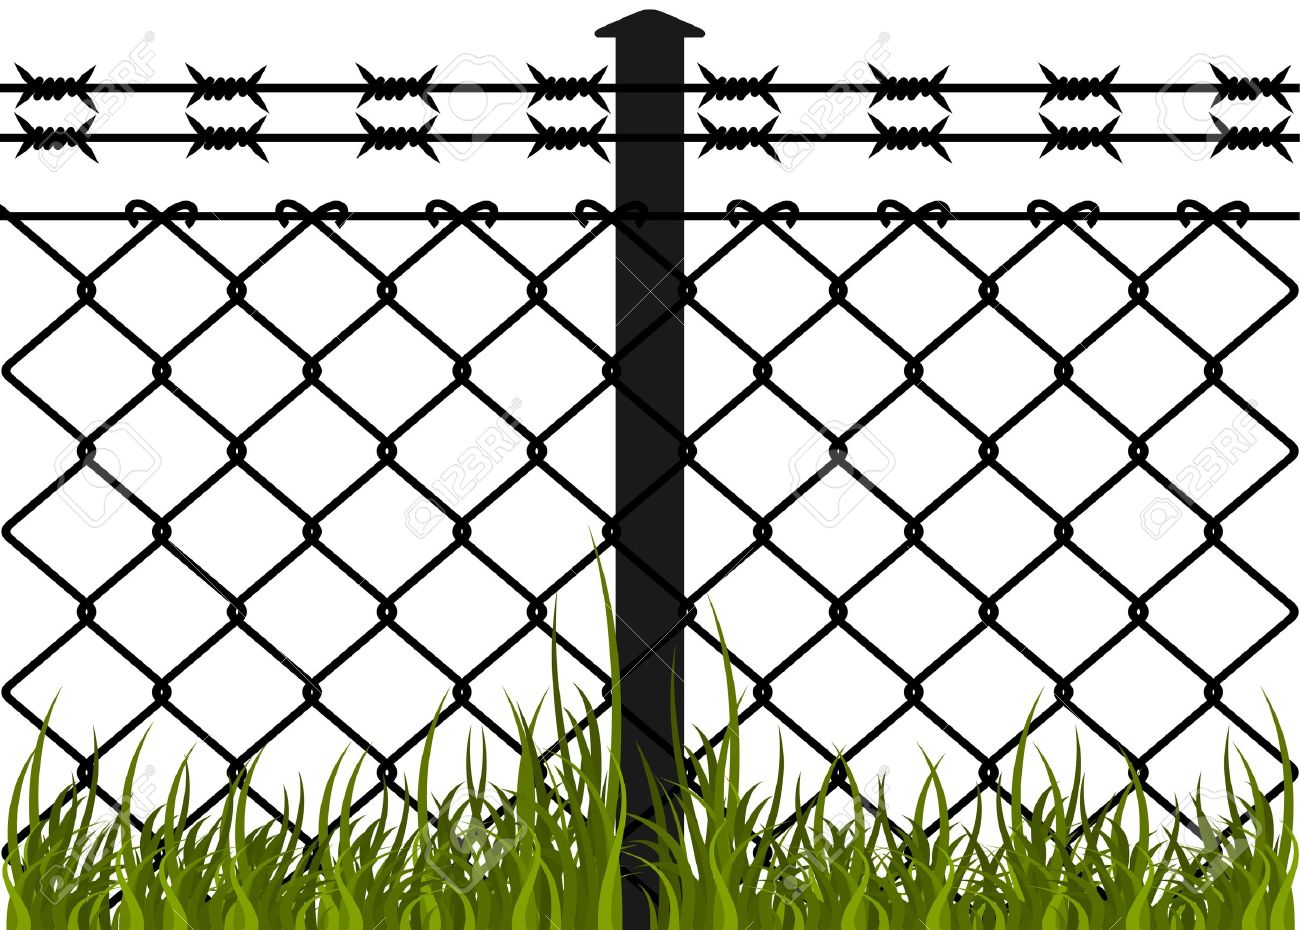 Wire fence with barbed wires Vector illustration.